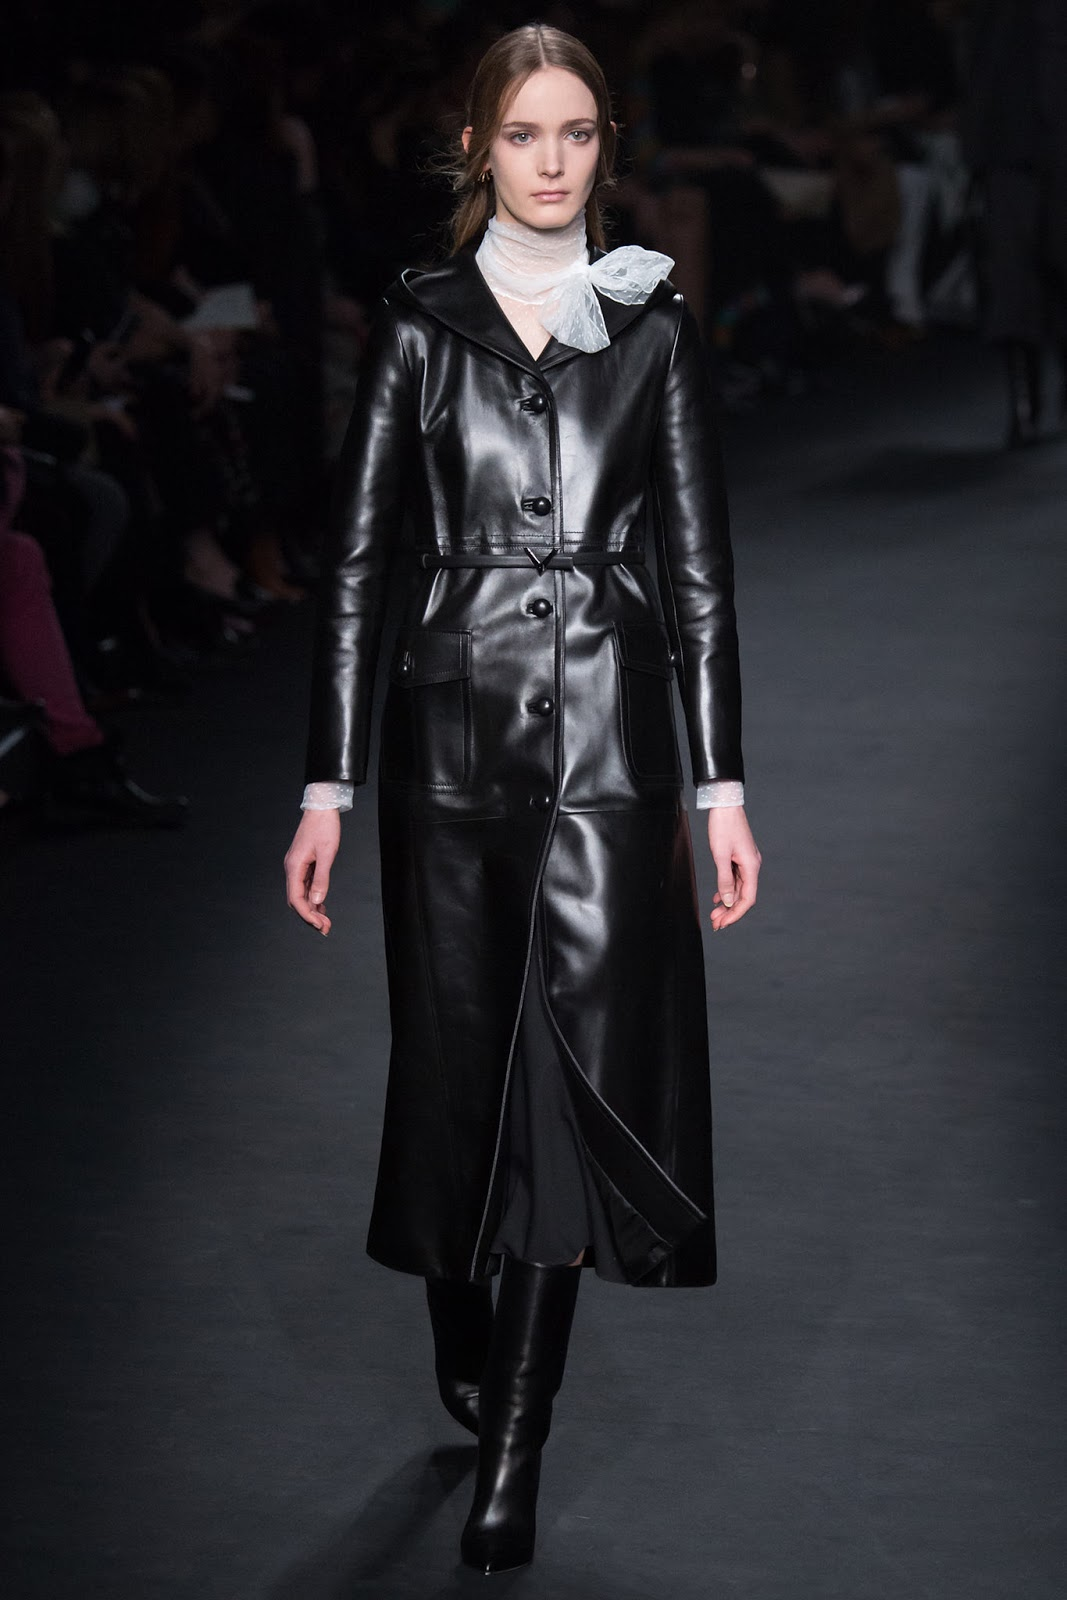 Trench coats as seen on a runway at Valentino Autumn/Winter 2015 via www.fashionedbylove.co.uk